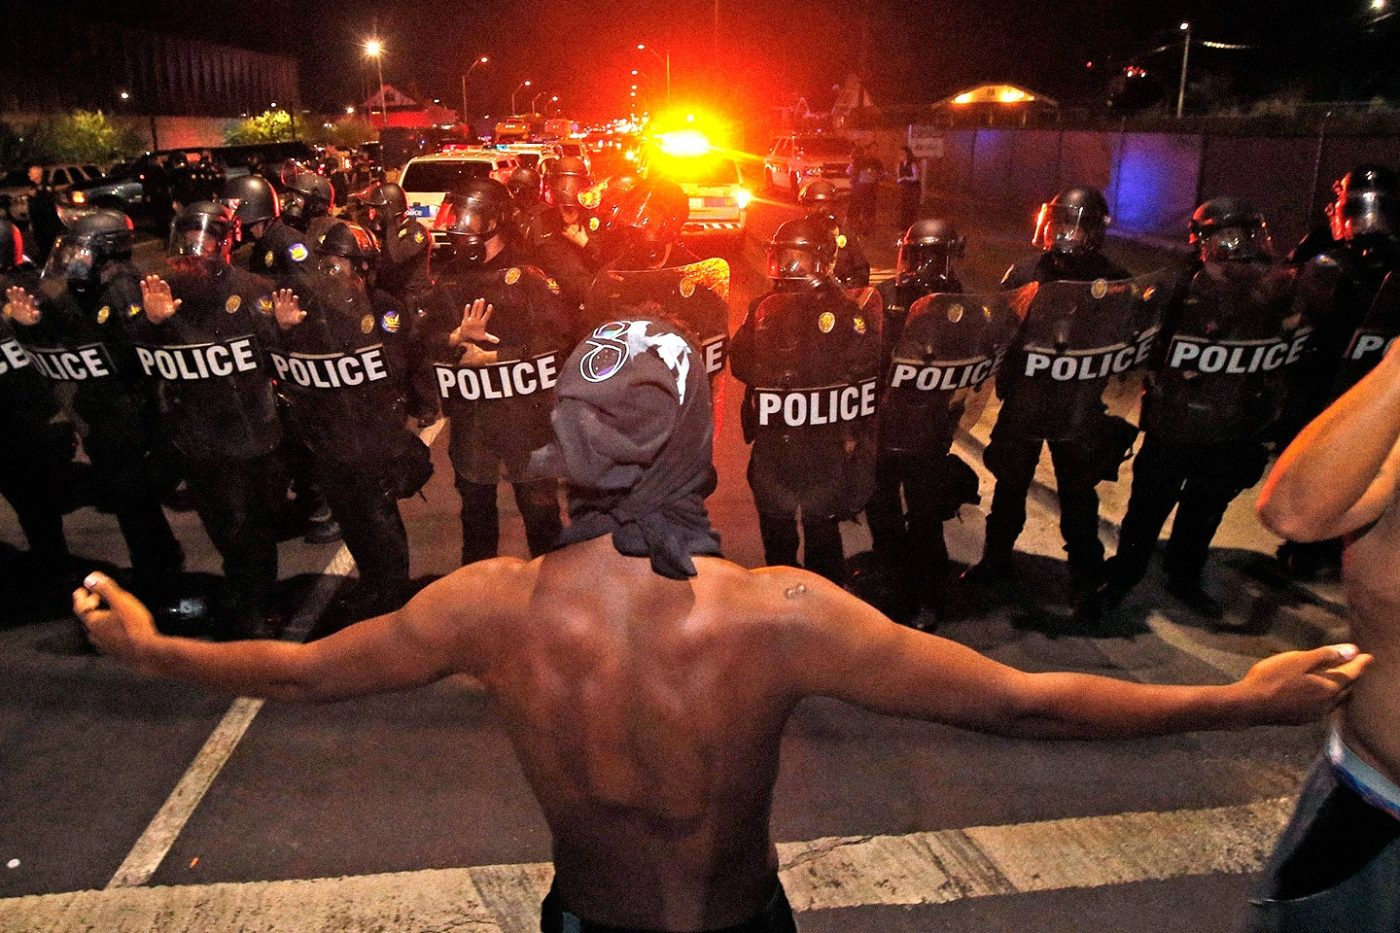 Black-man-with-arms-outstretched-faces-line-of-riot-police-2016-by-Ross-D.-Franklin-AP-1400x933, San Francisco is NOT a law enforcement reform leader, Local News & Views